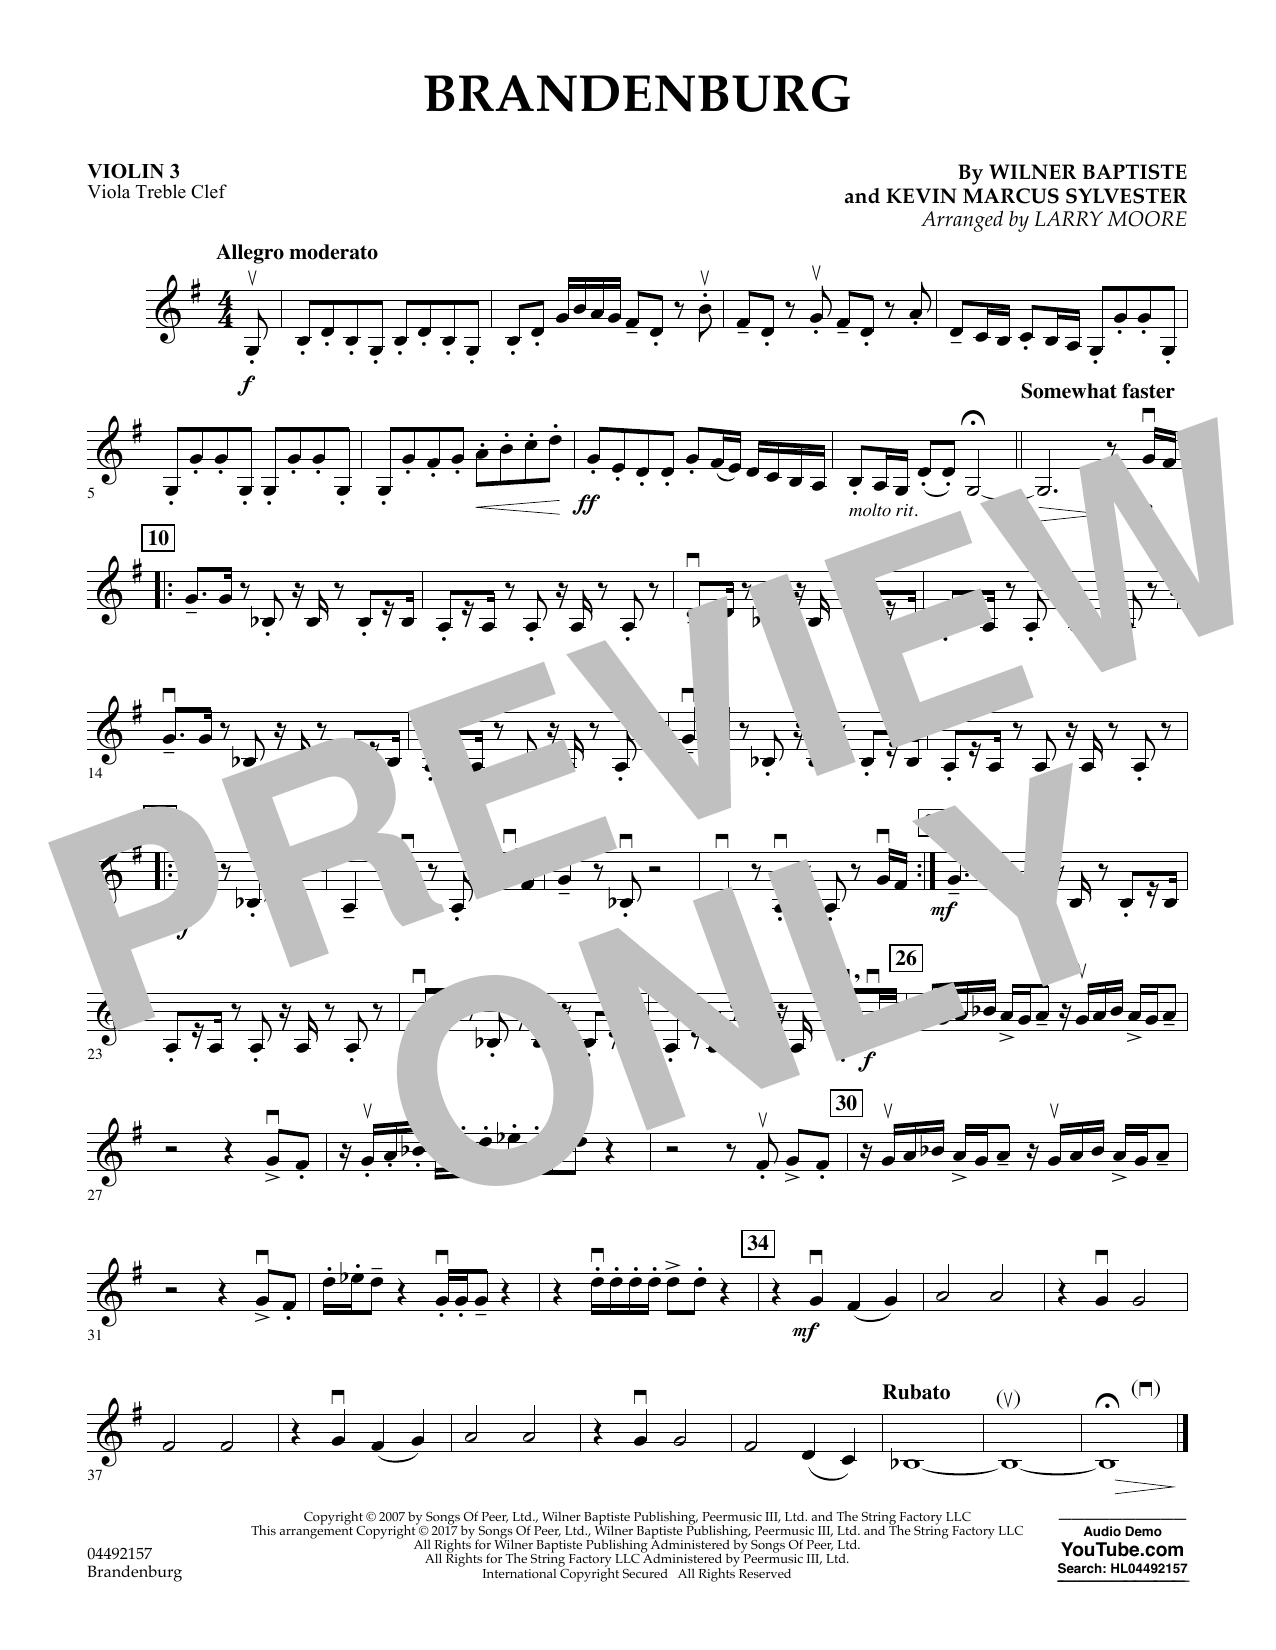 Download Larry Moore 'Brandenburg - Violin 3 (Viola Treble Clef)' Digital Sheet Music Notes & Chords and start playing in minutes